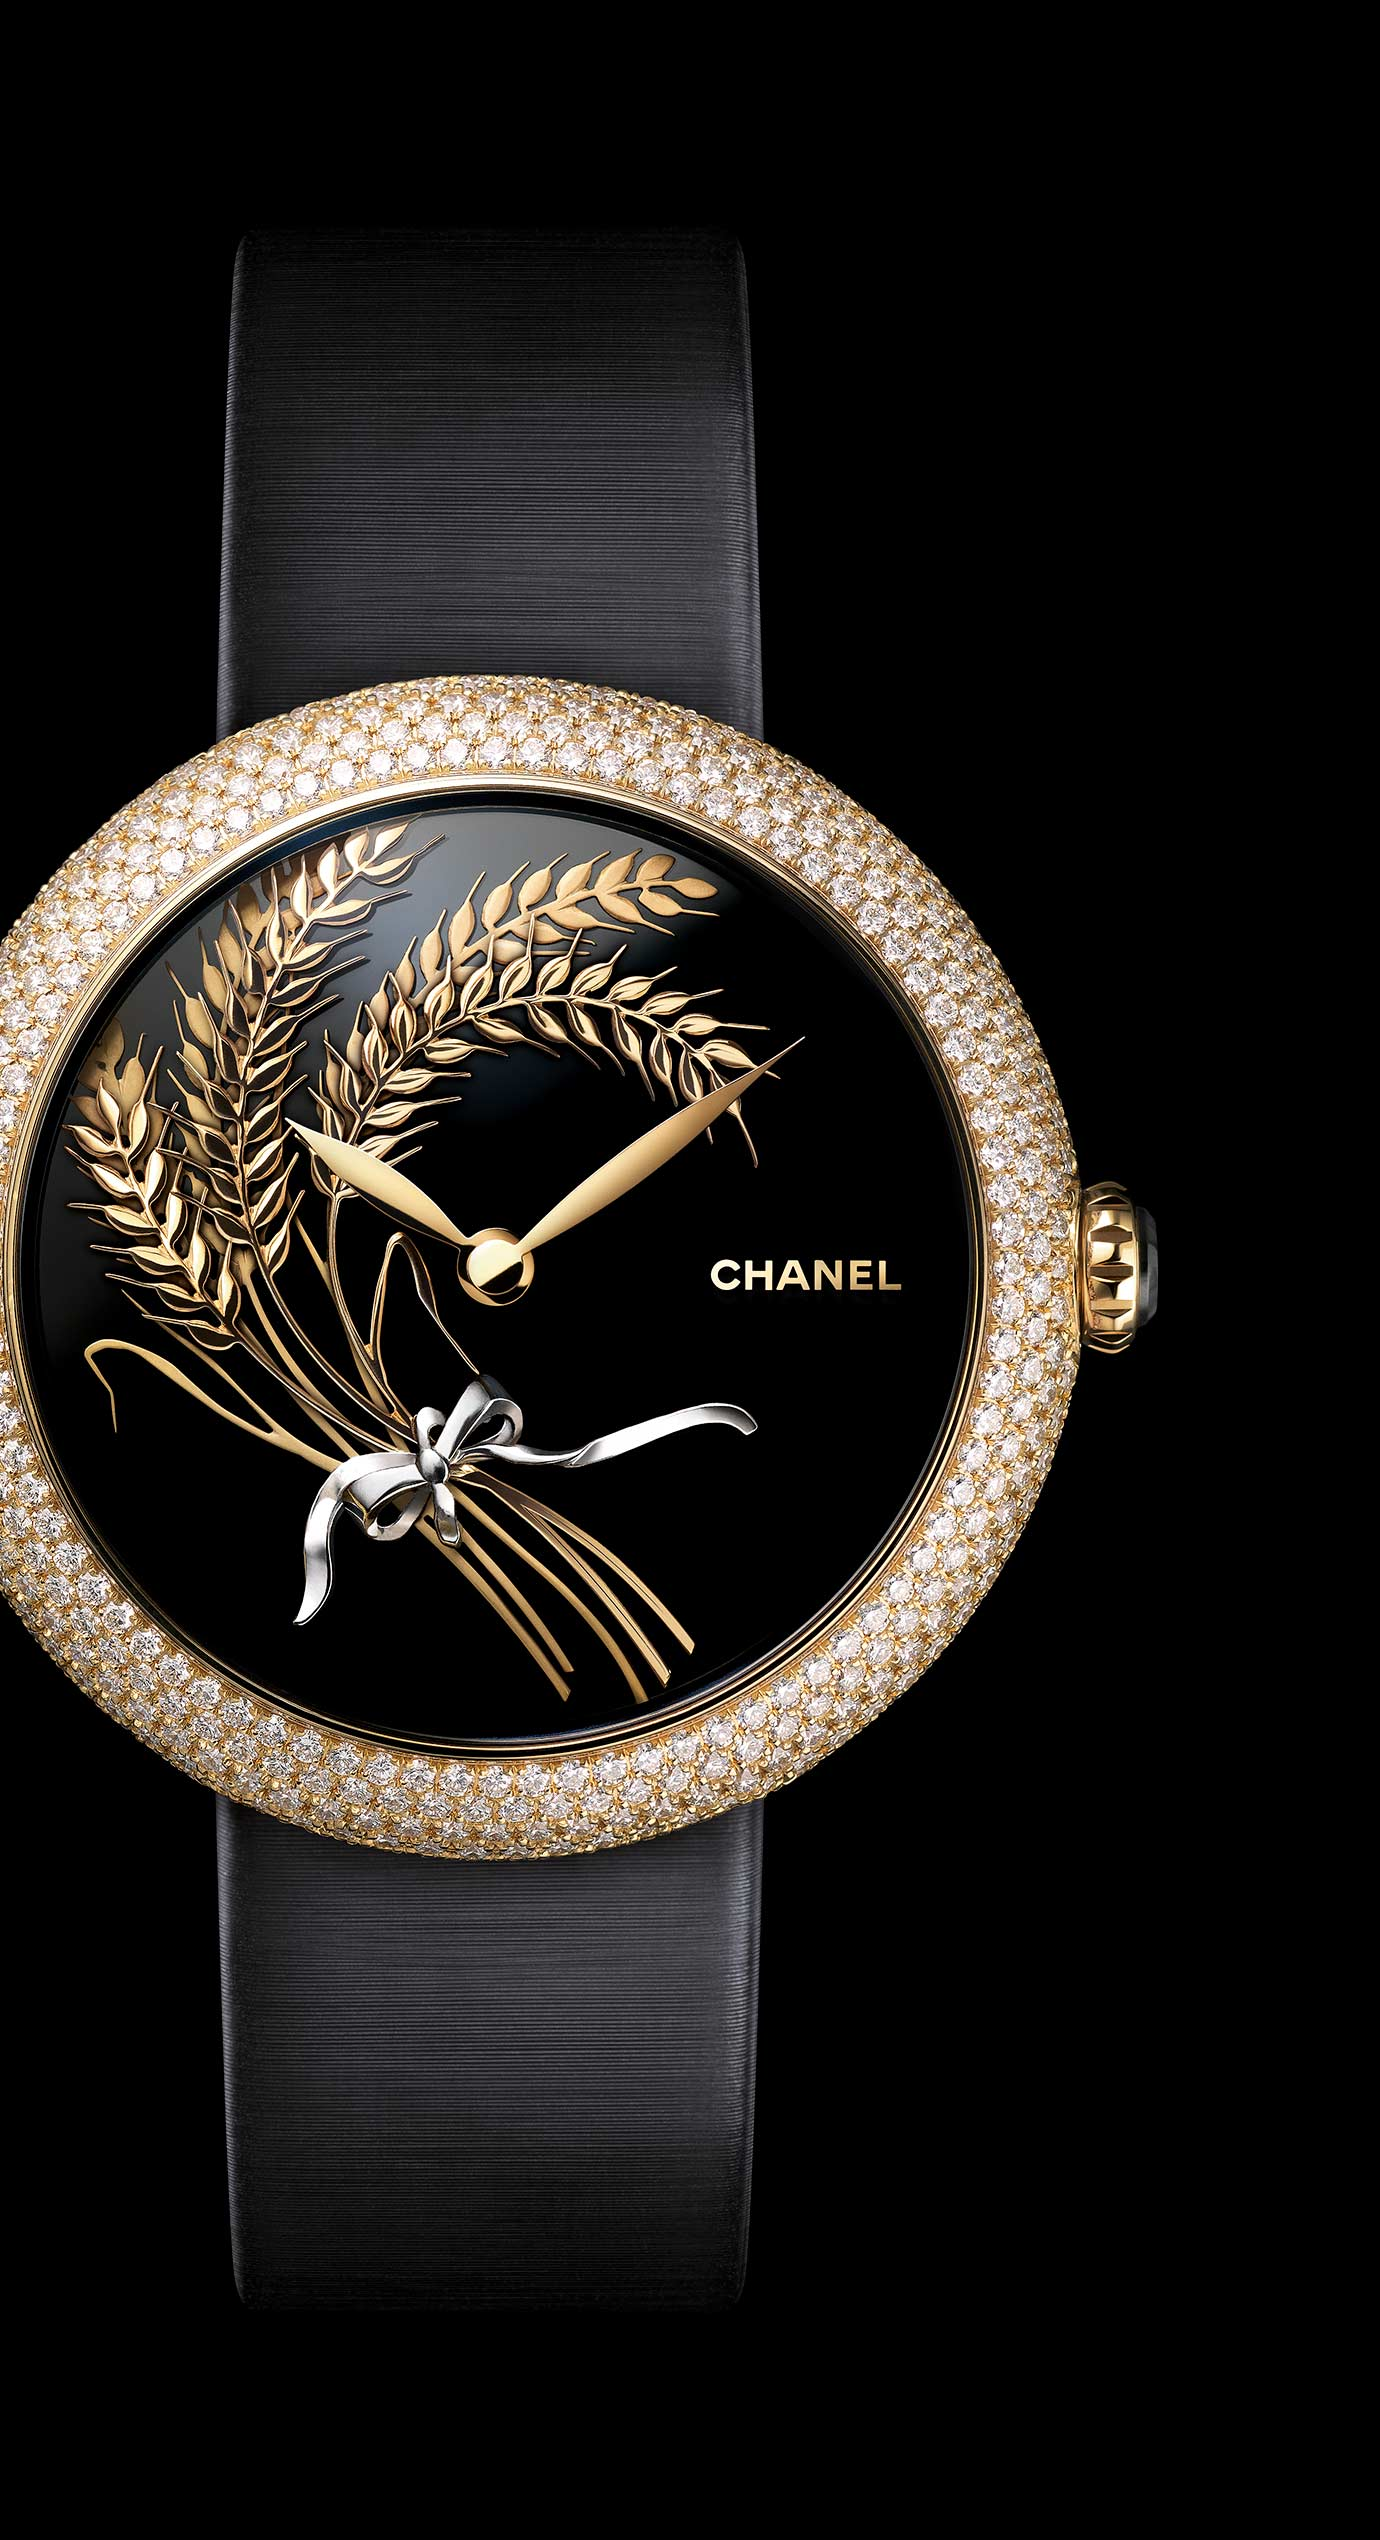 Mademoiselle Privé Les Blés de CHANEL Jewelry watch - Onyx and sculpted gold - Enlarged view